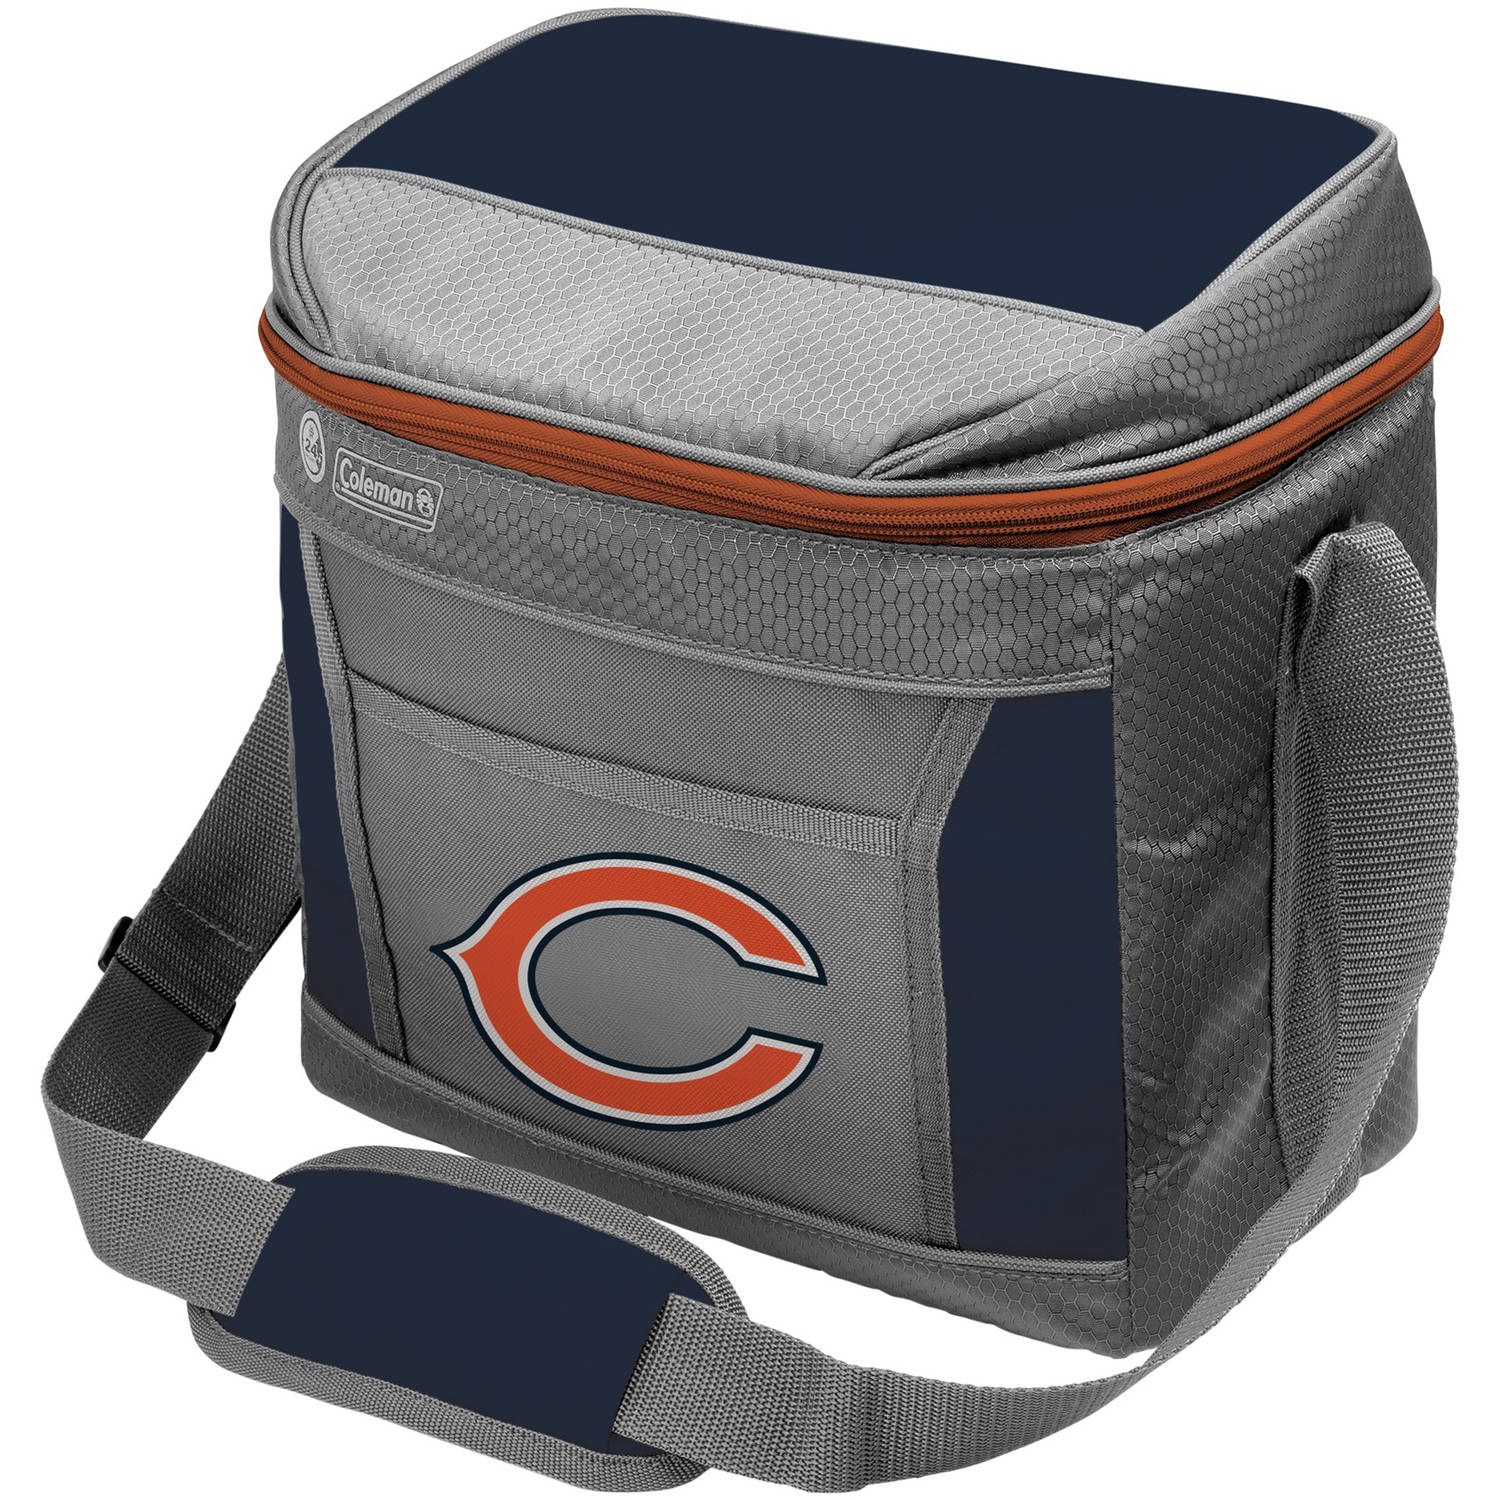 NFL 16-Can Soft-Sided Cooler, Chicago